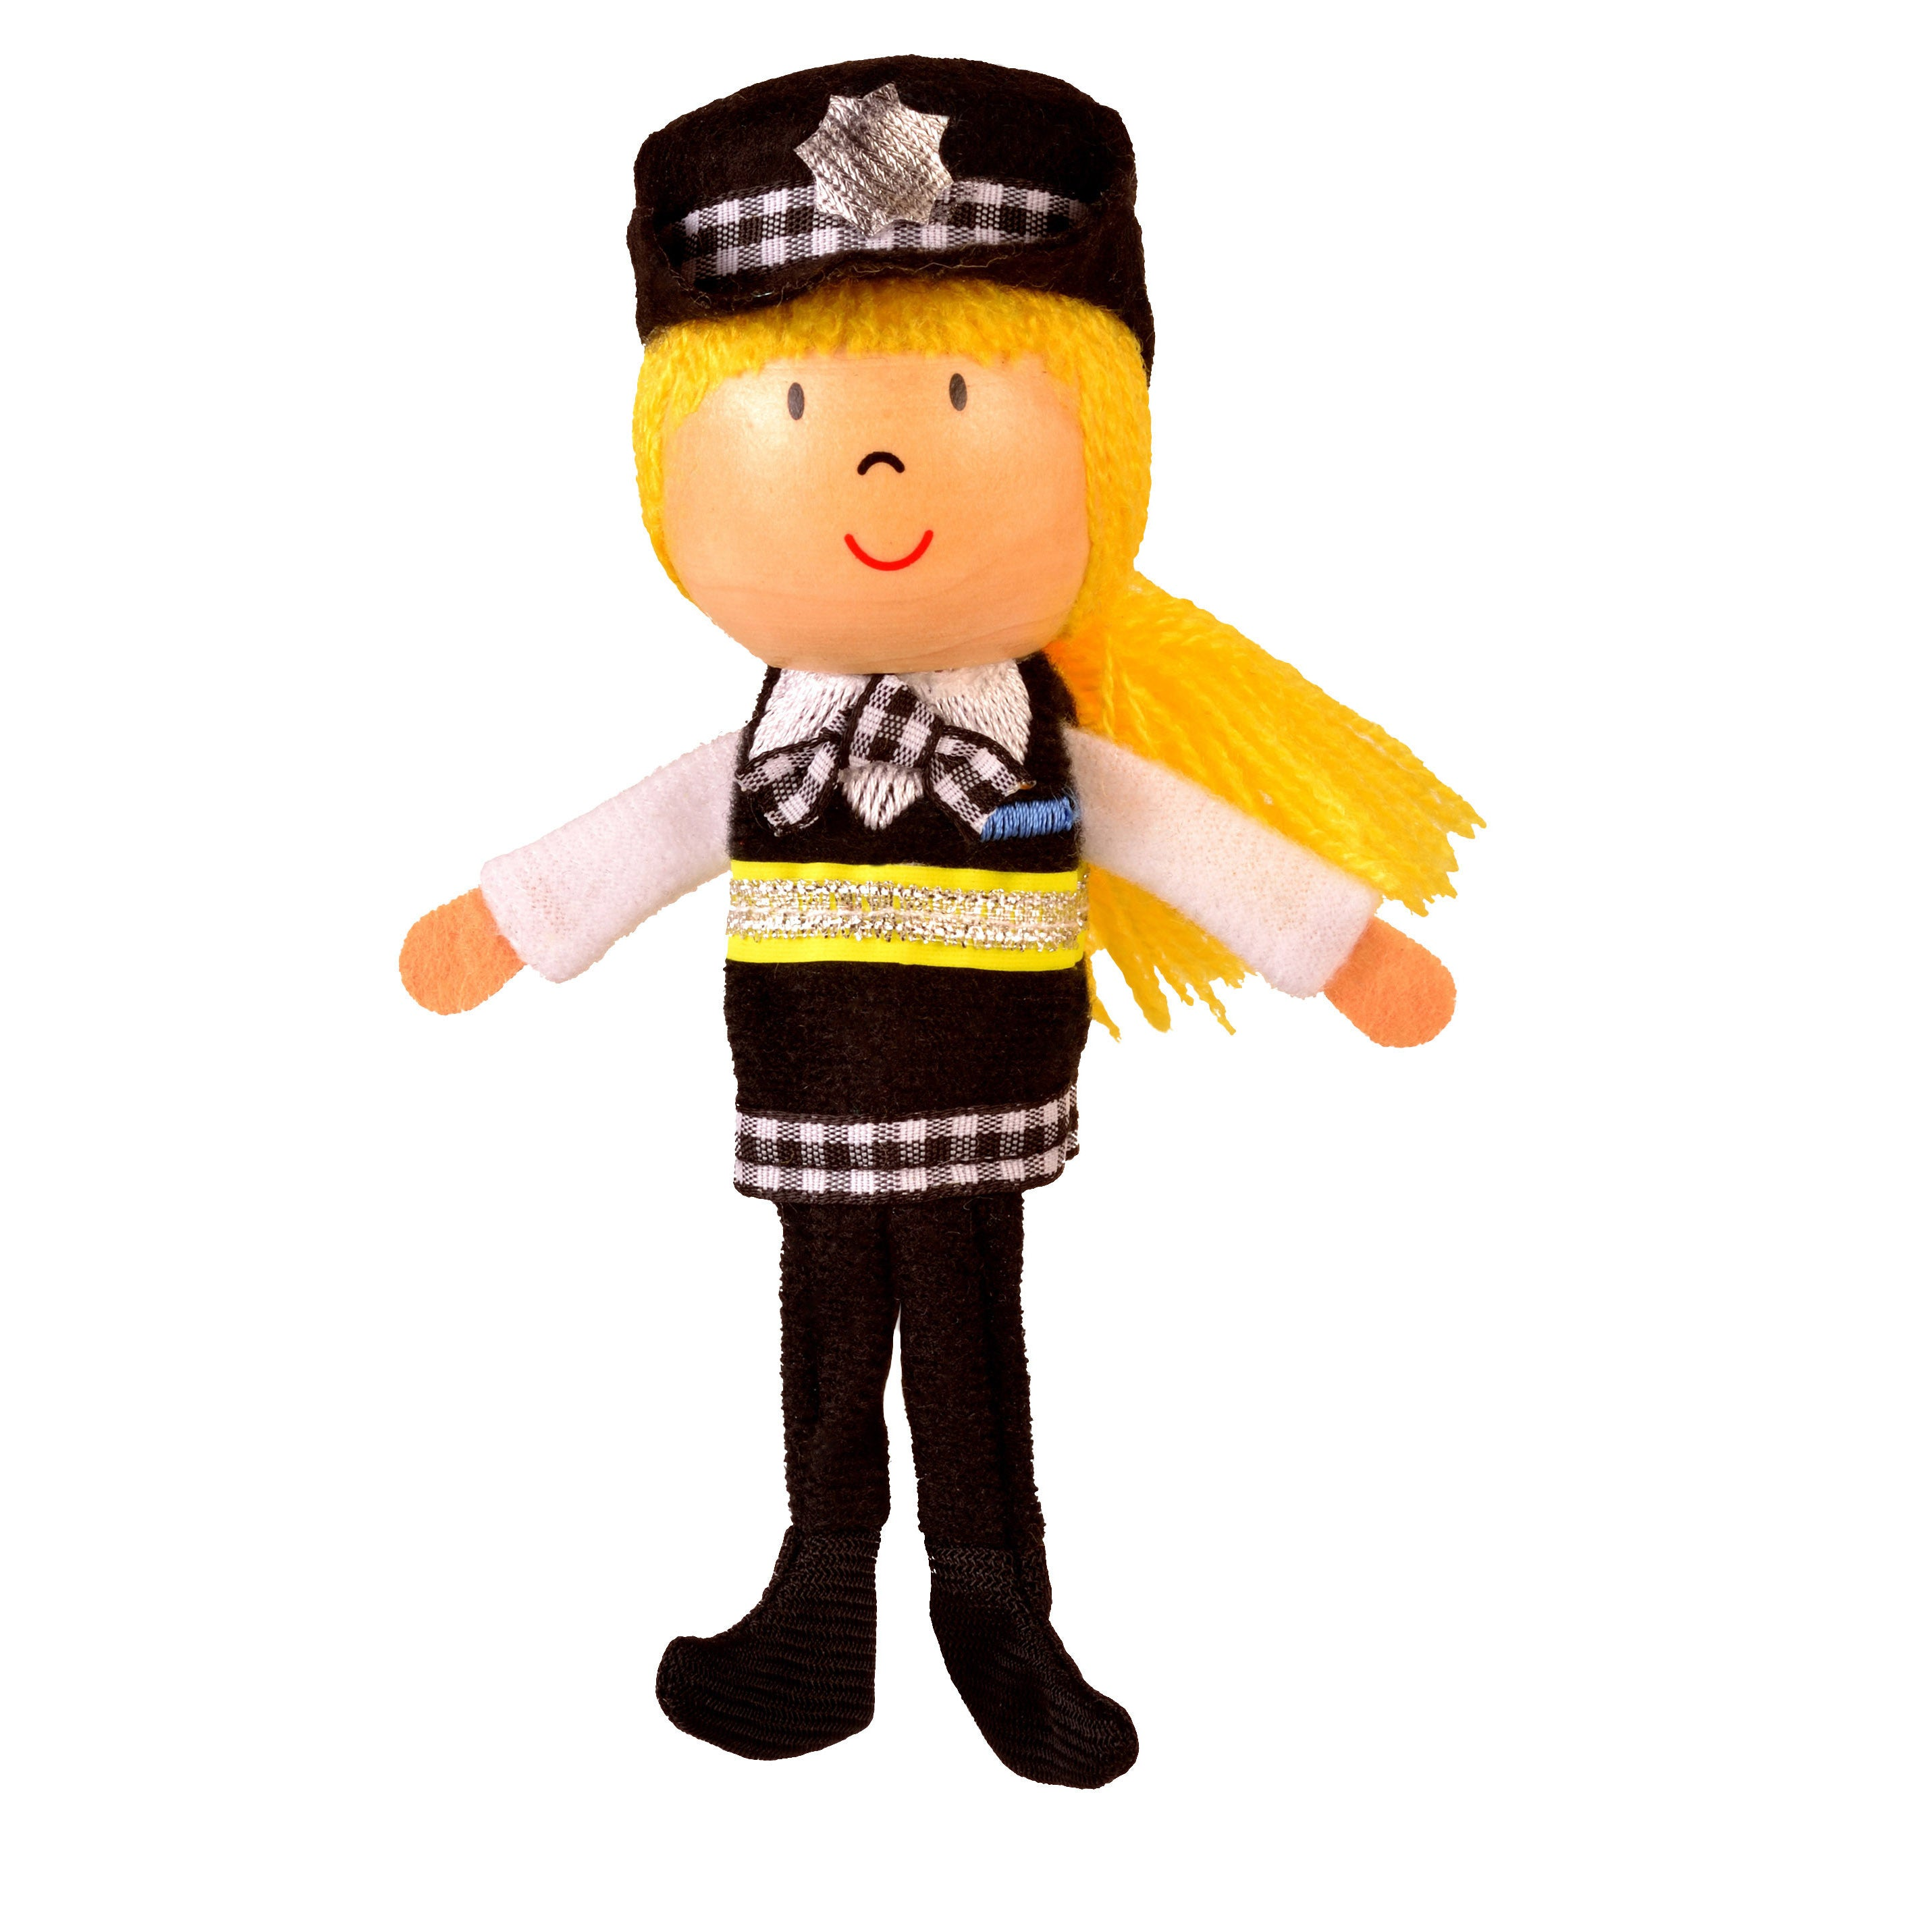 Policewoman finger puppet full length